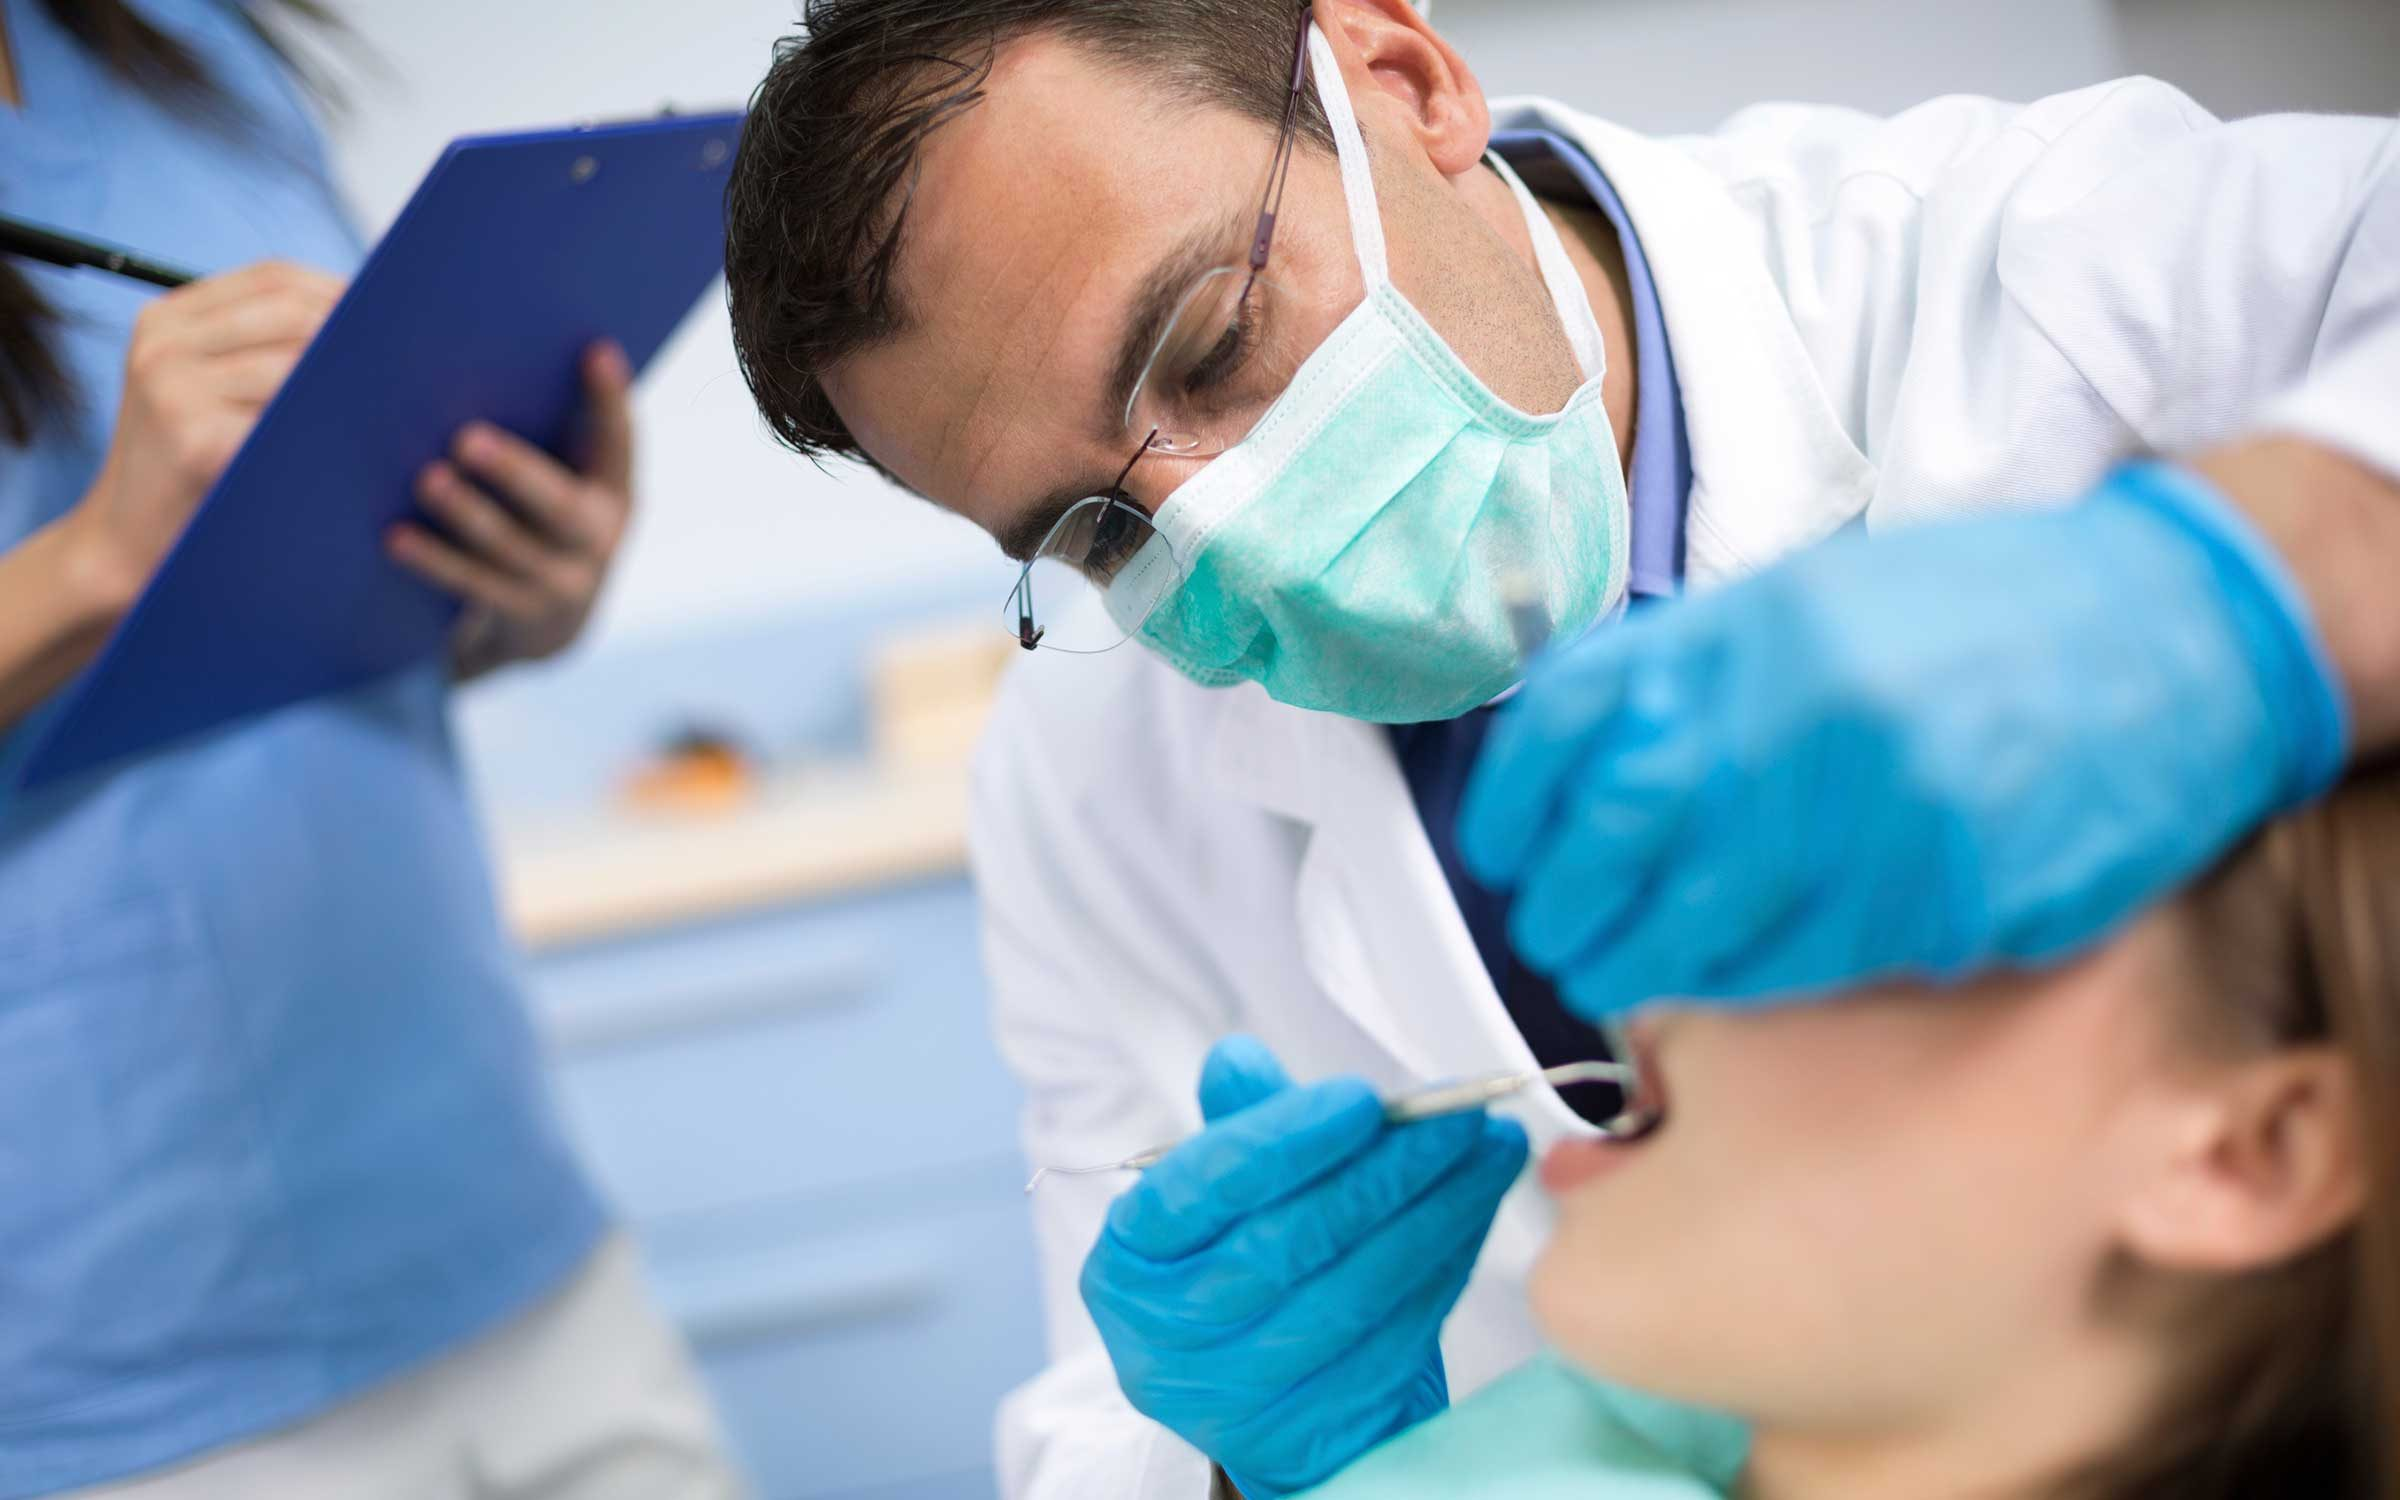 Dentist looking at patient's mouth